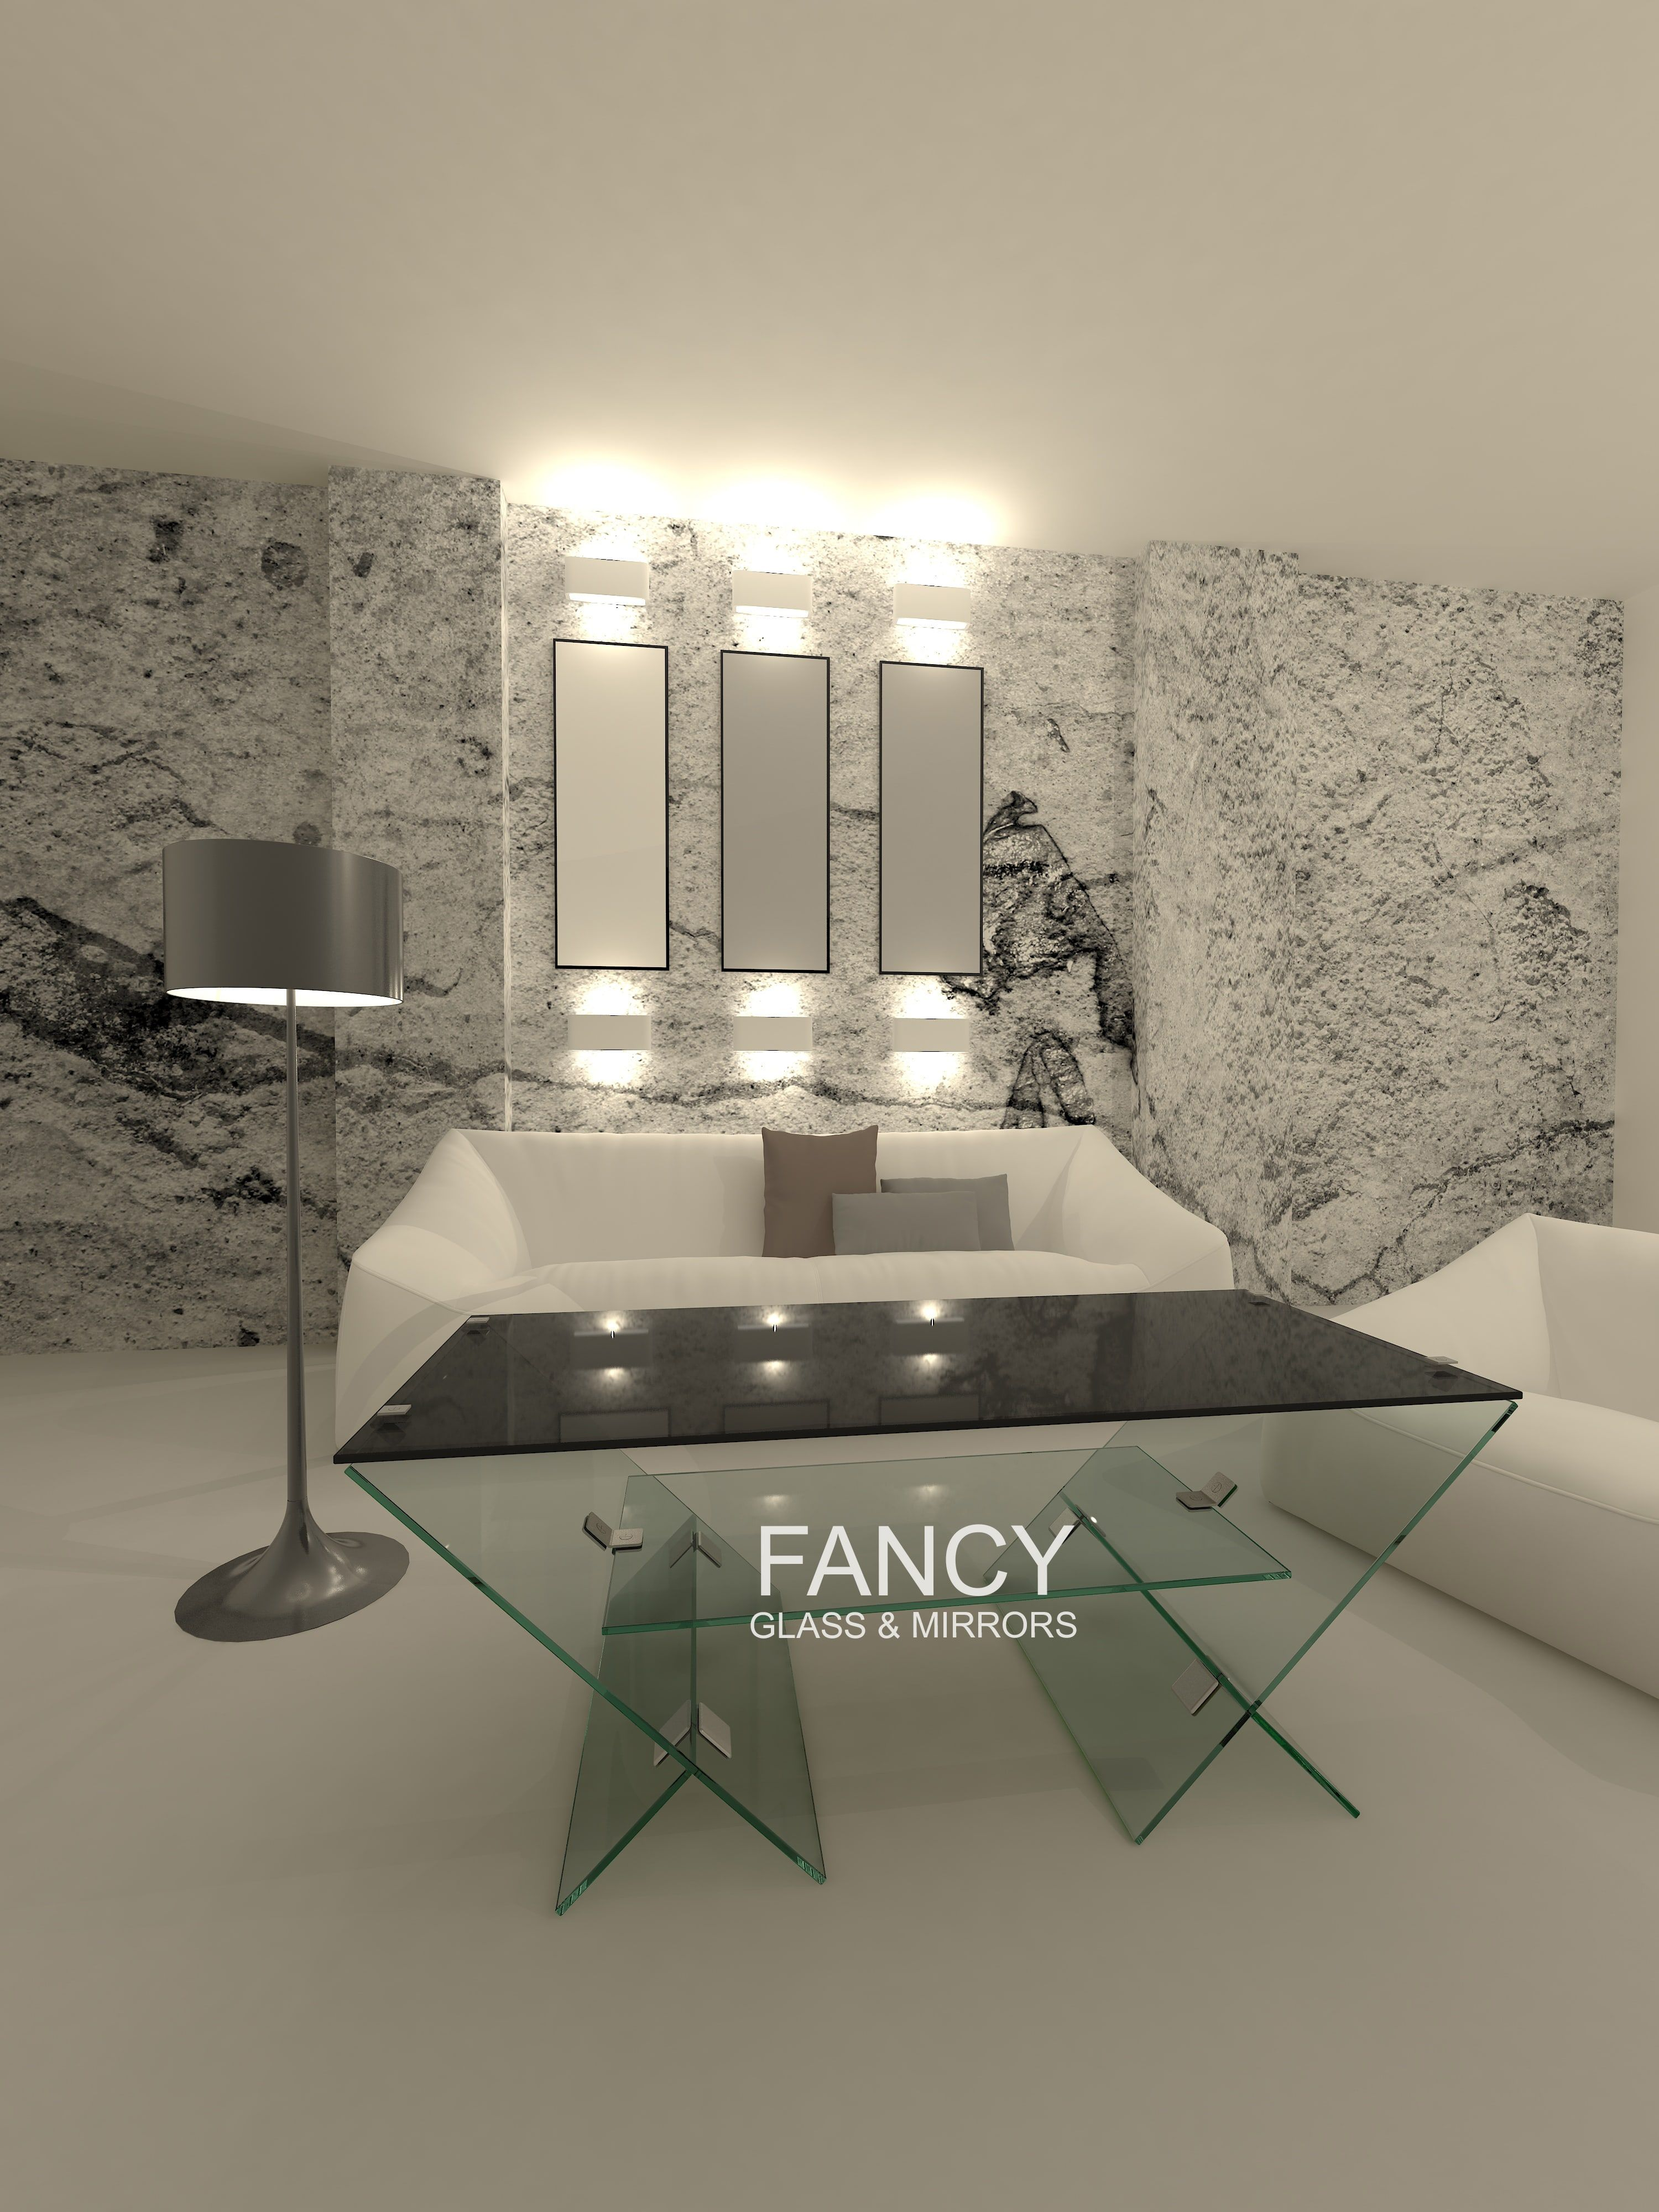 This Taranni Glass coffee Table is a sophisticated glass